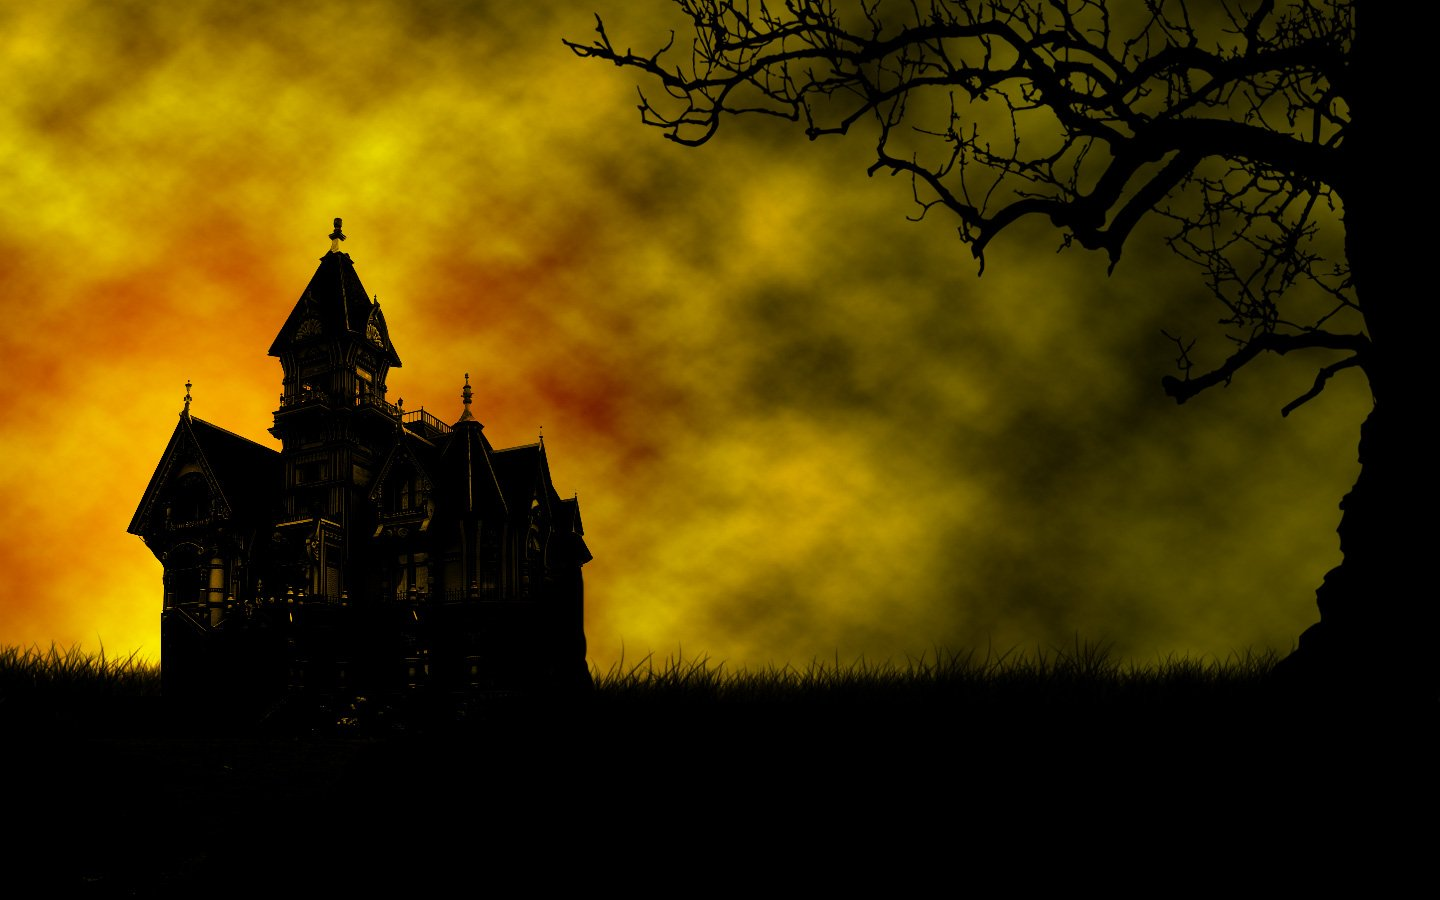 Background With Haunted House Scary And Creepy Pictures 1440x900